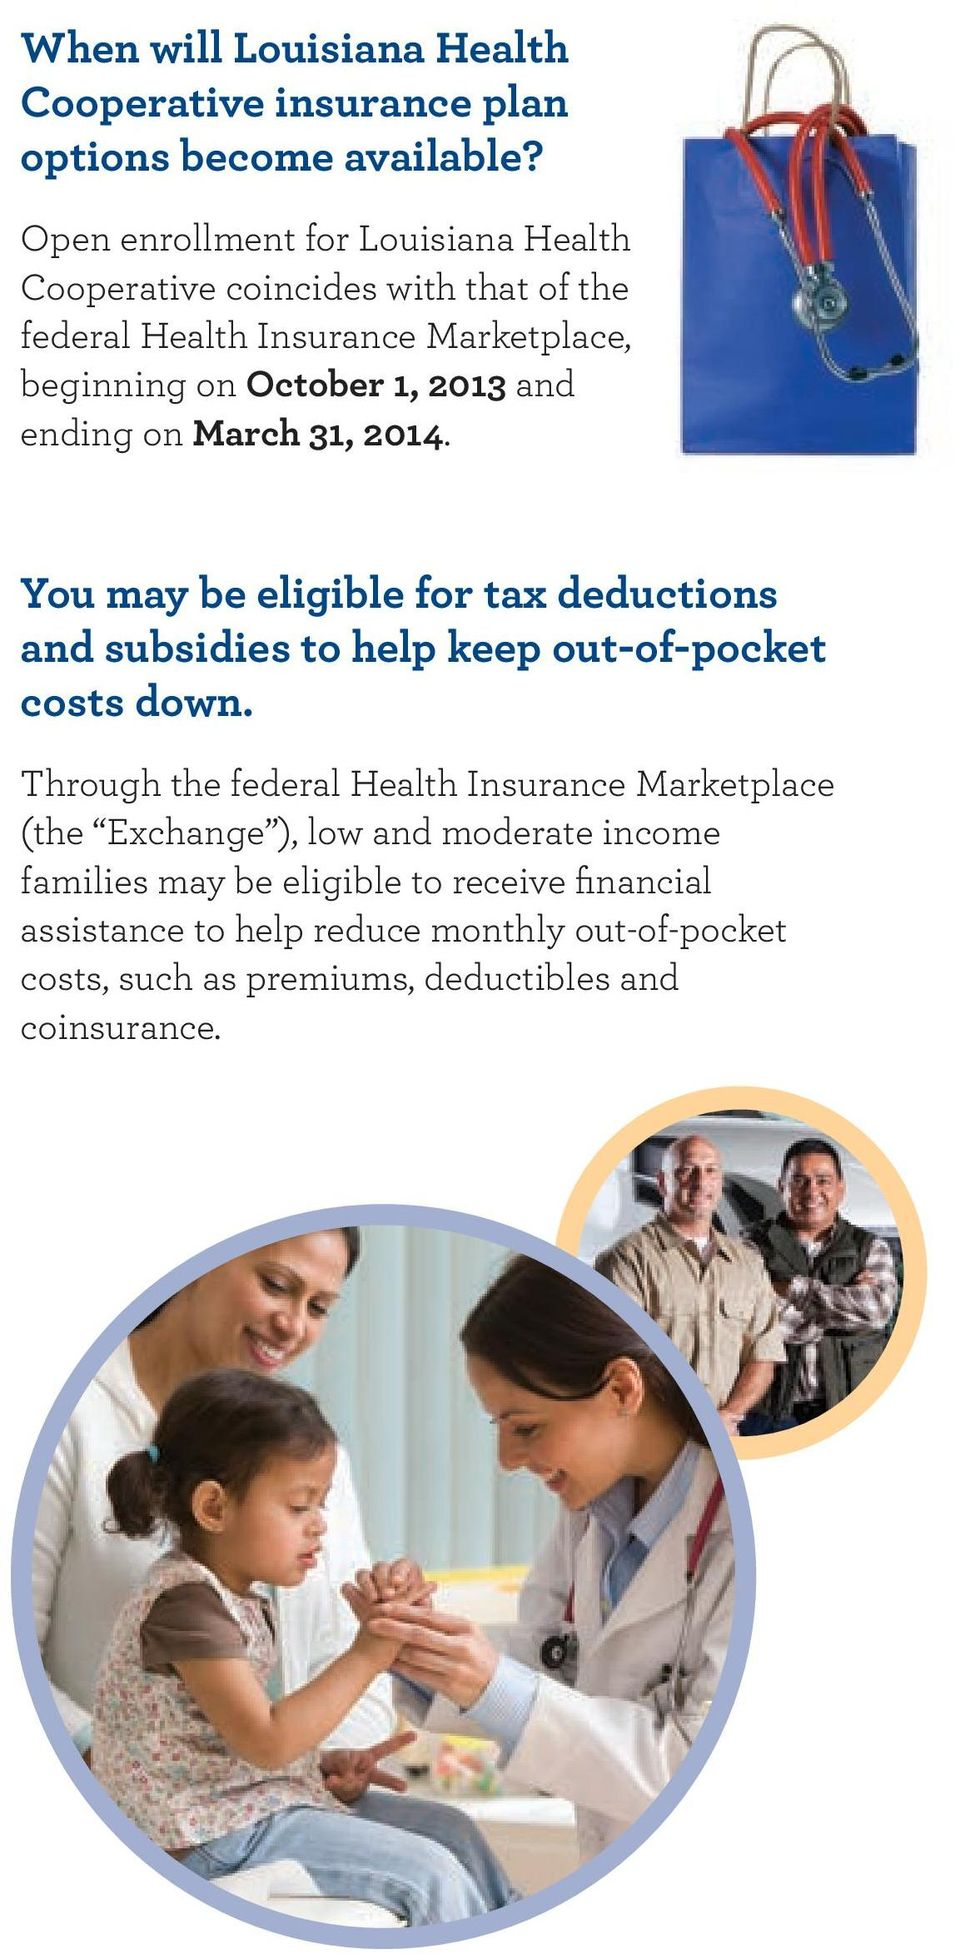 and ending on March 31, 2014. You may be eligible for tax deductions and subsidies to help keep out-of-pocket costs down.